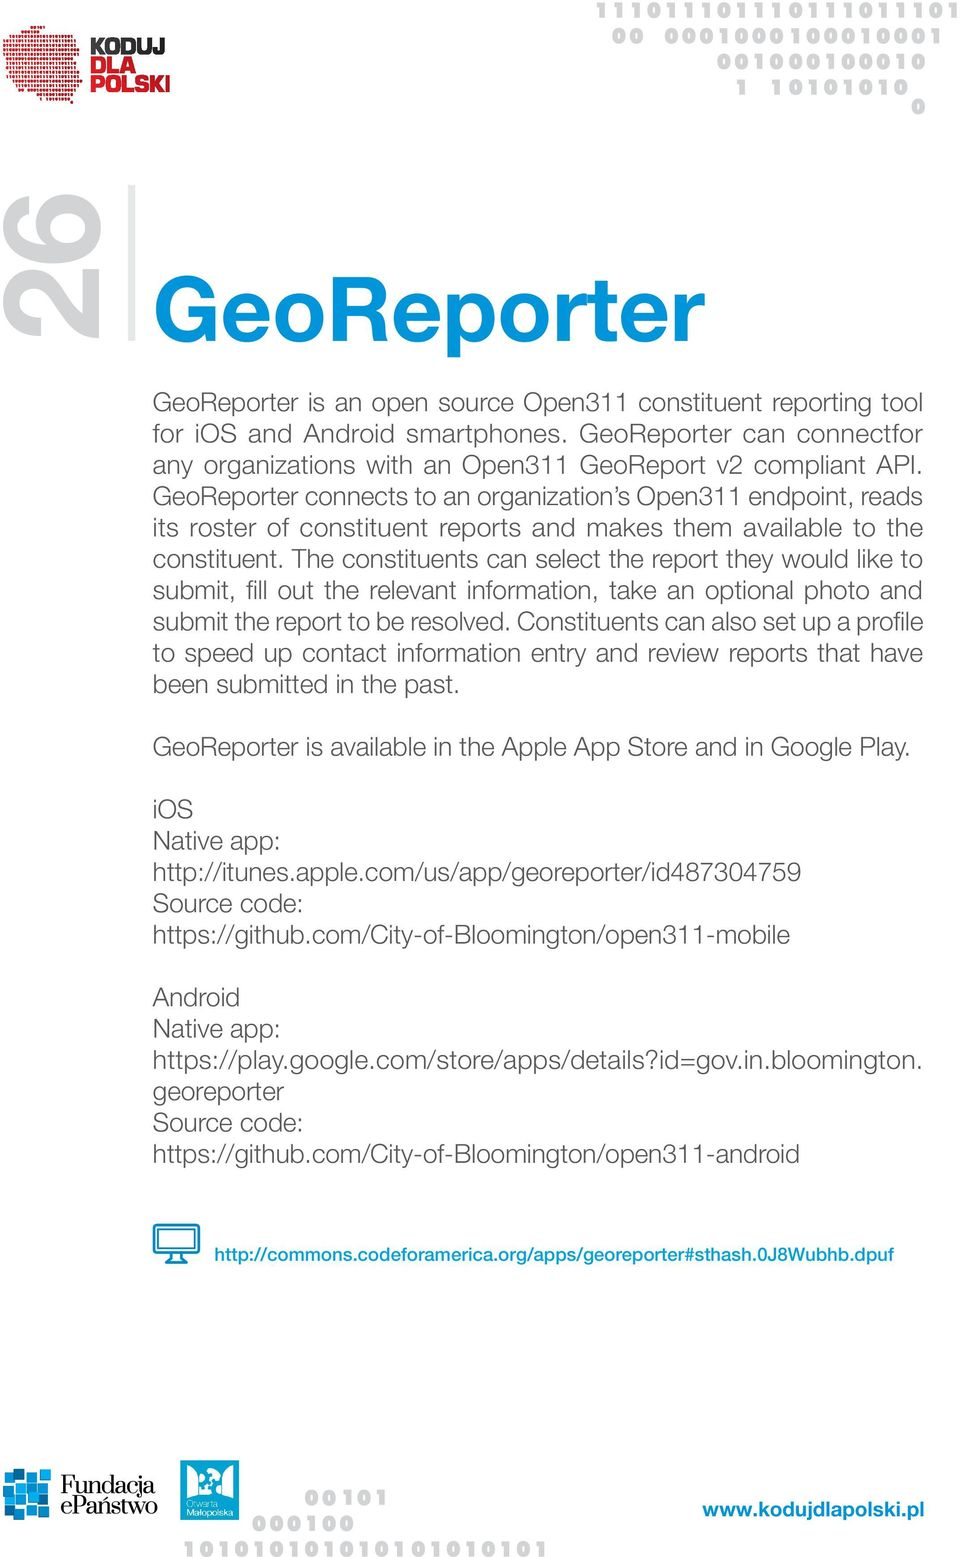 GeoReporter connects to an organization s Open311 endpoint, reads its roster of constituent reports and makes them available to the constituent.